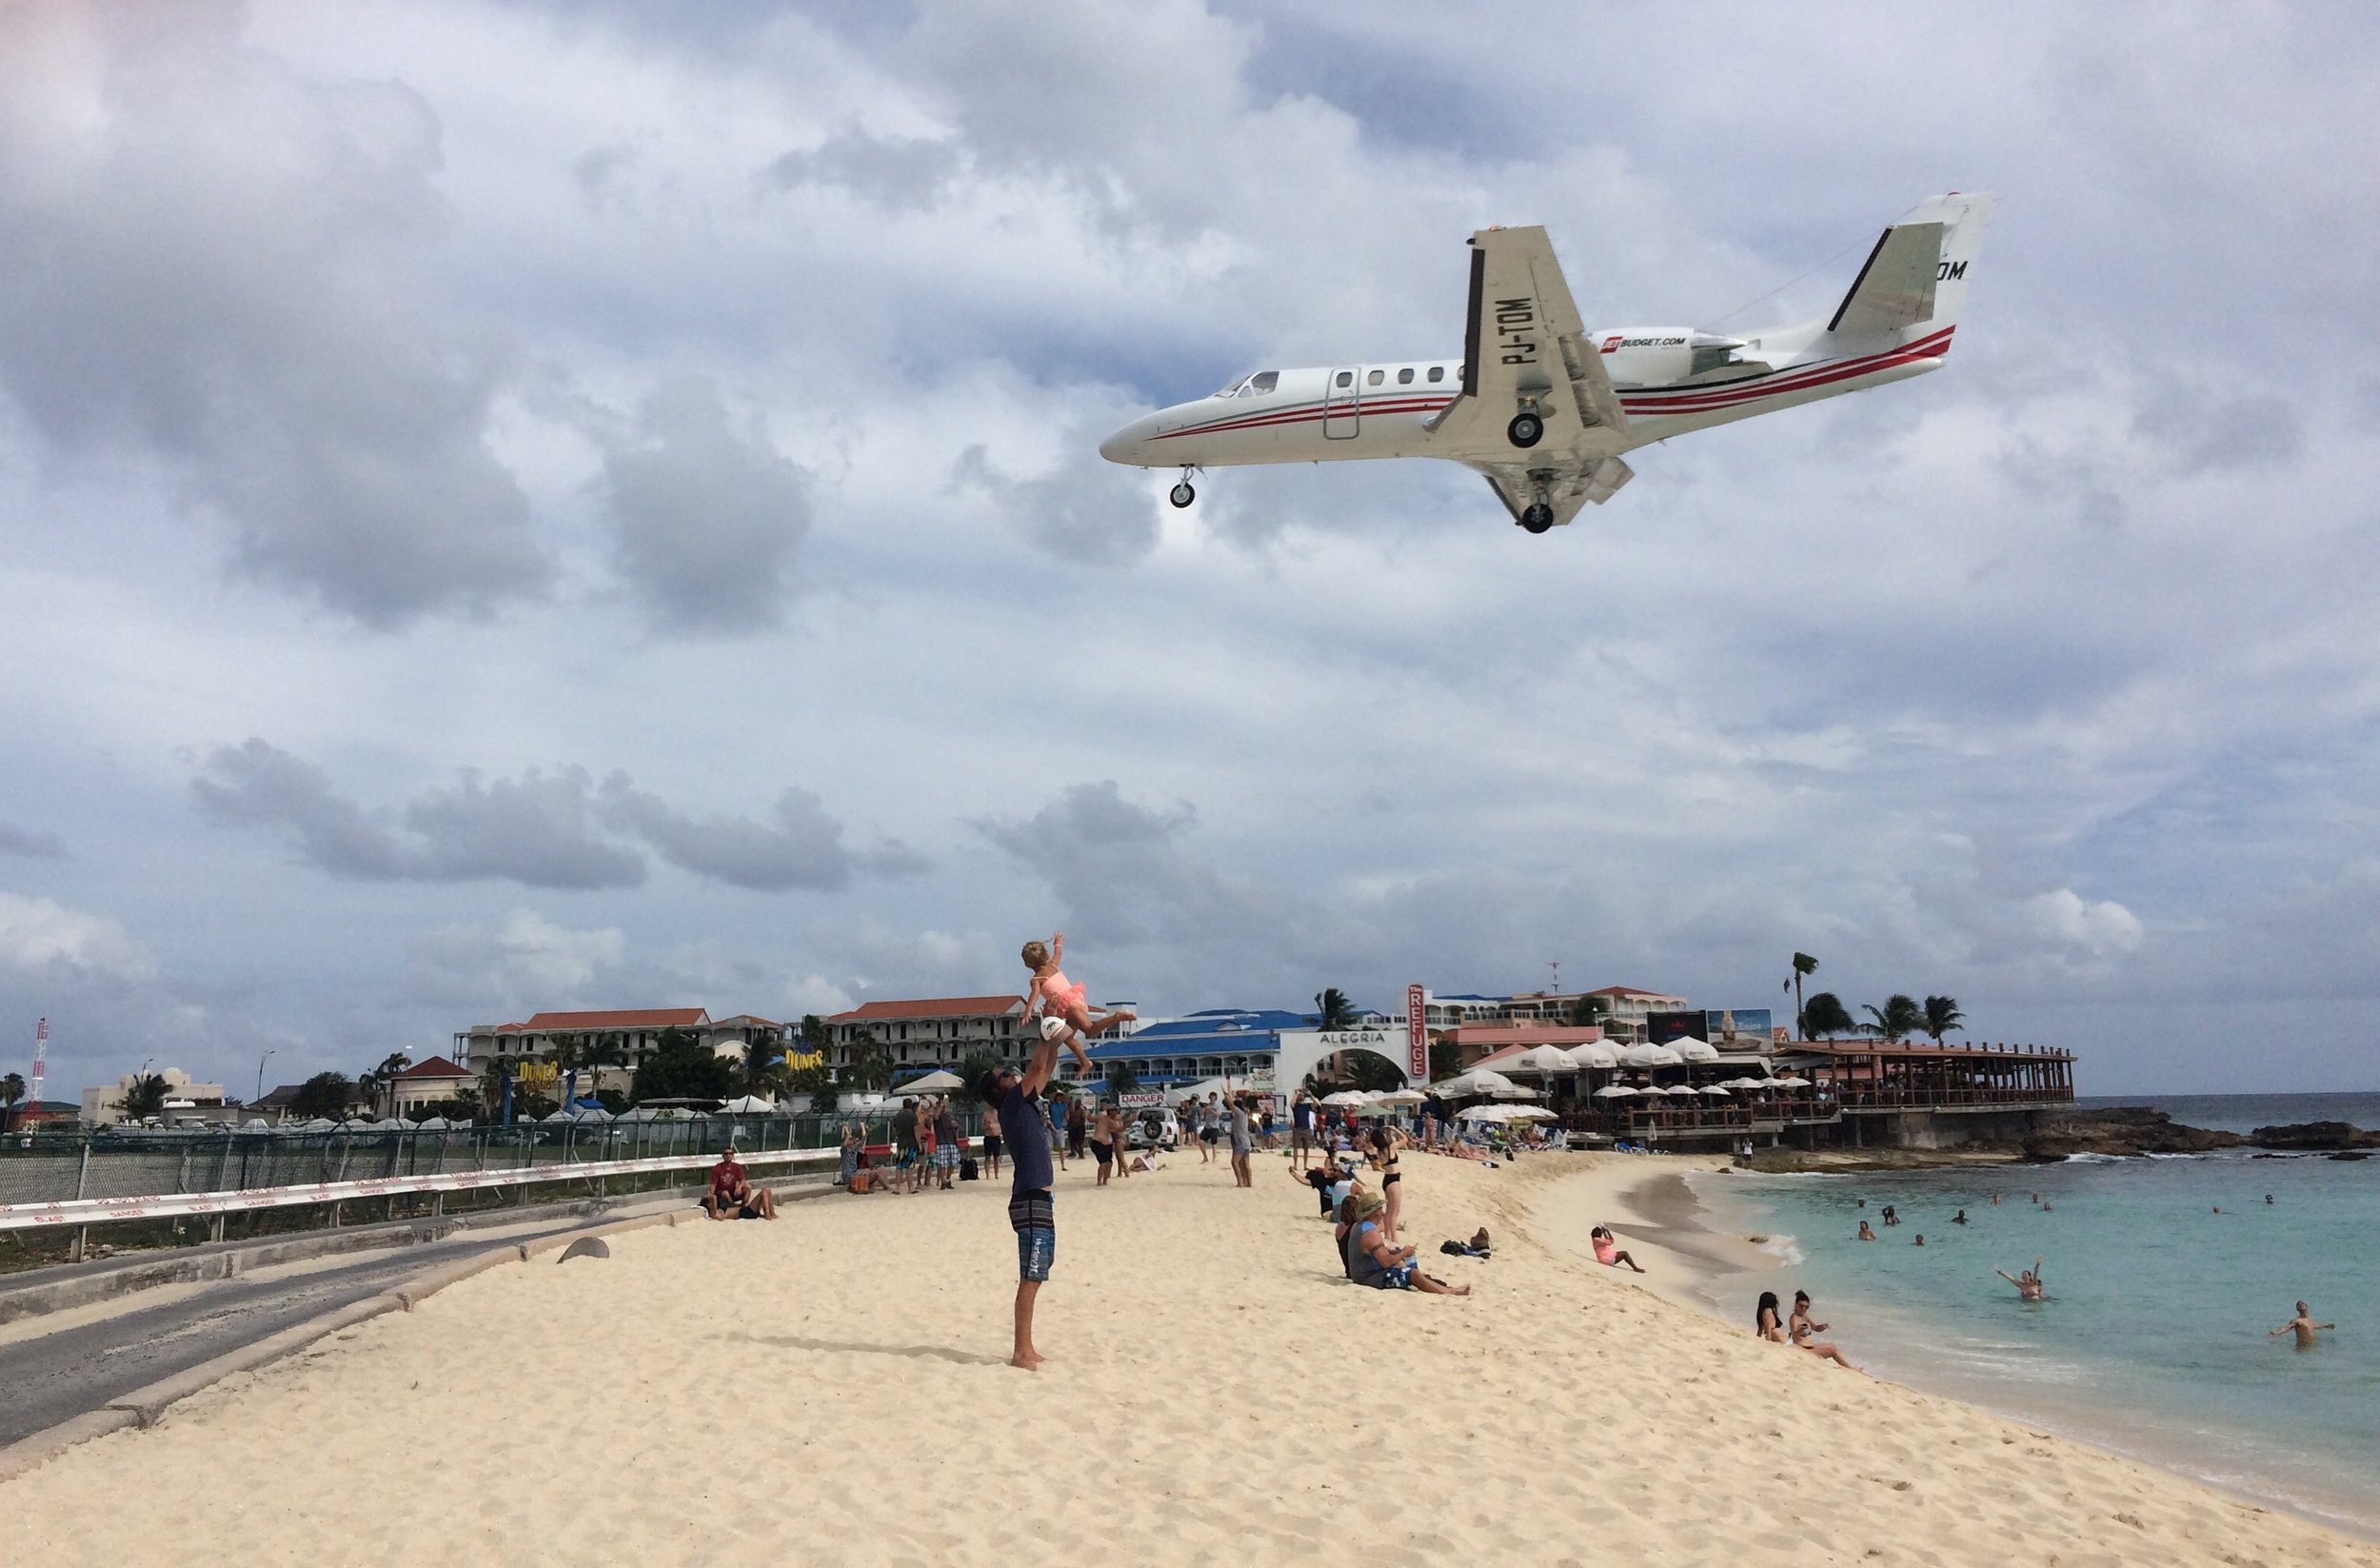 Taking the fly like an Aeroplane game to a new level at Maho Beach